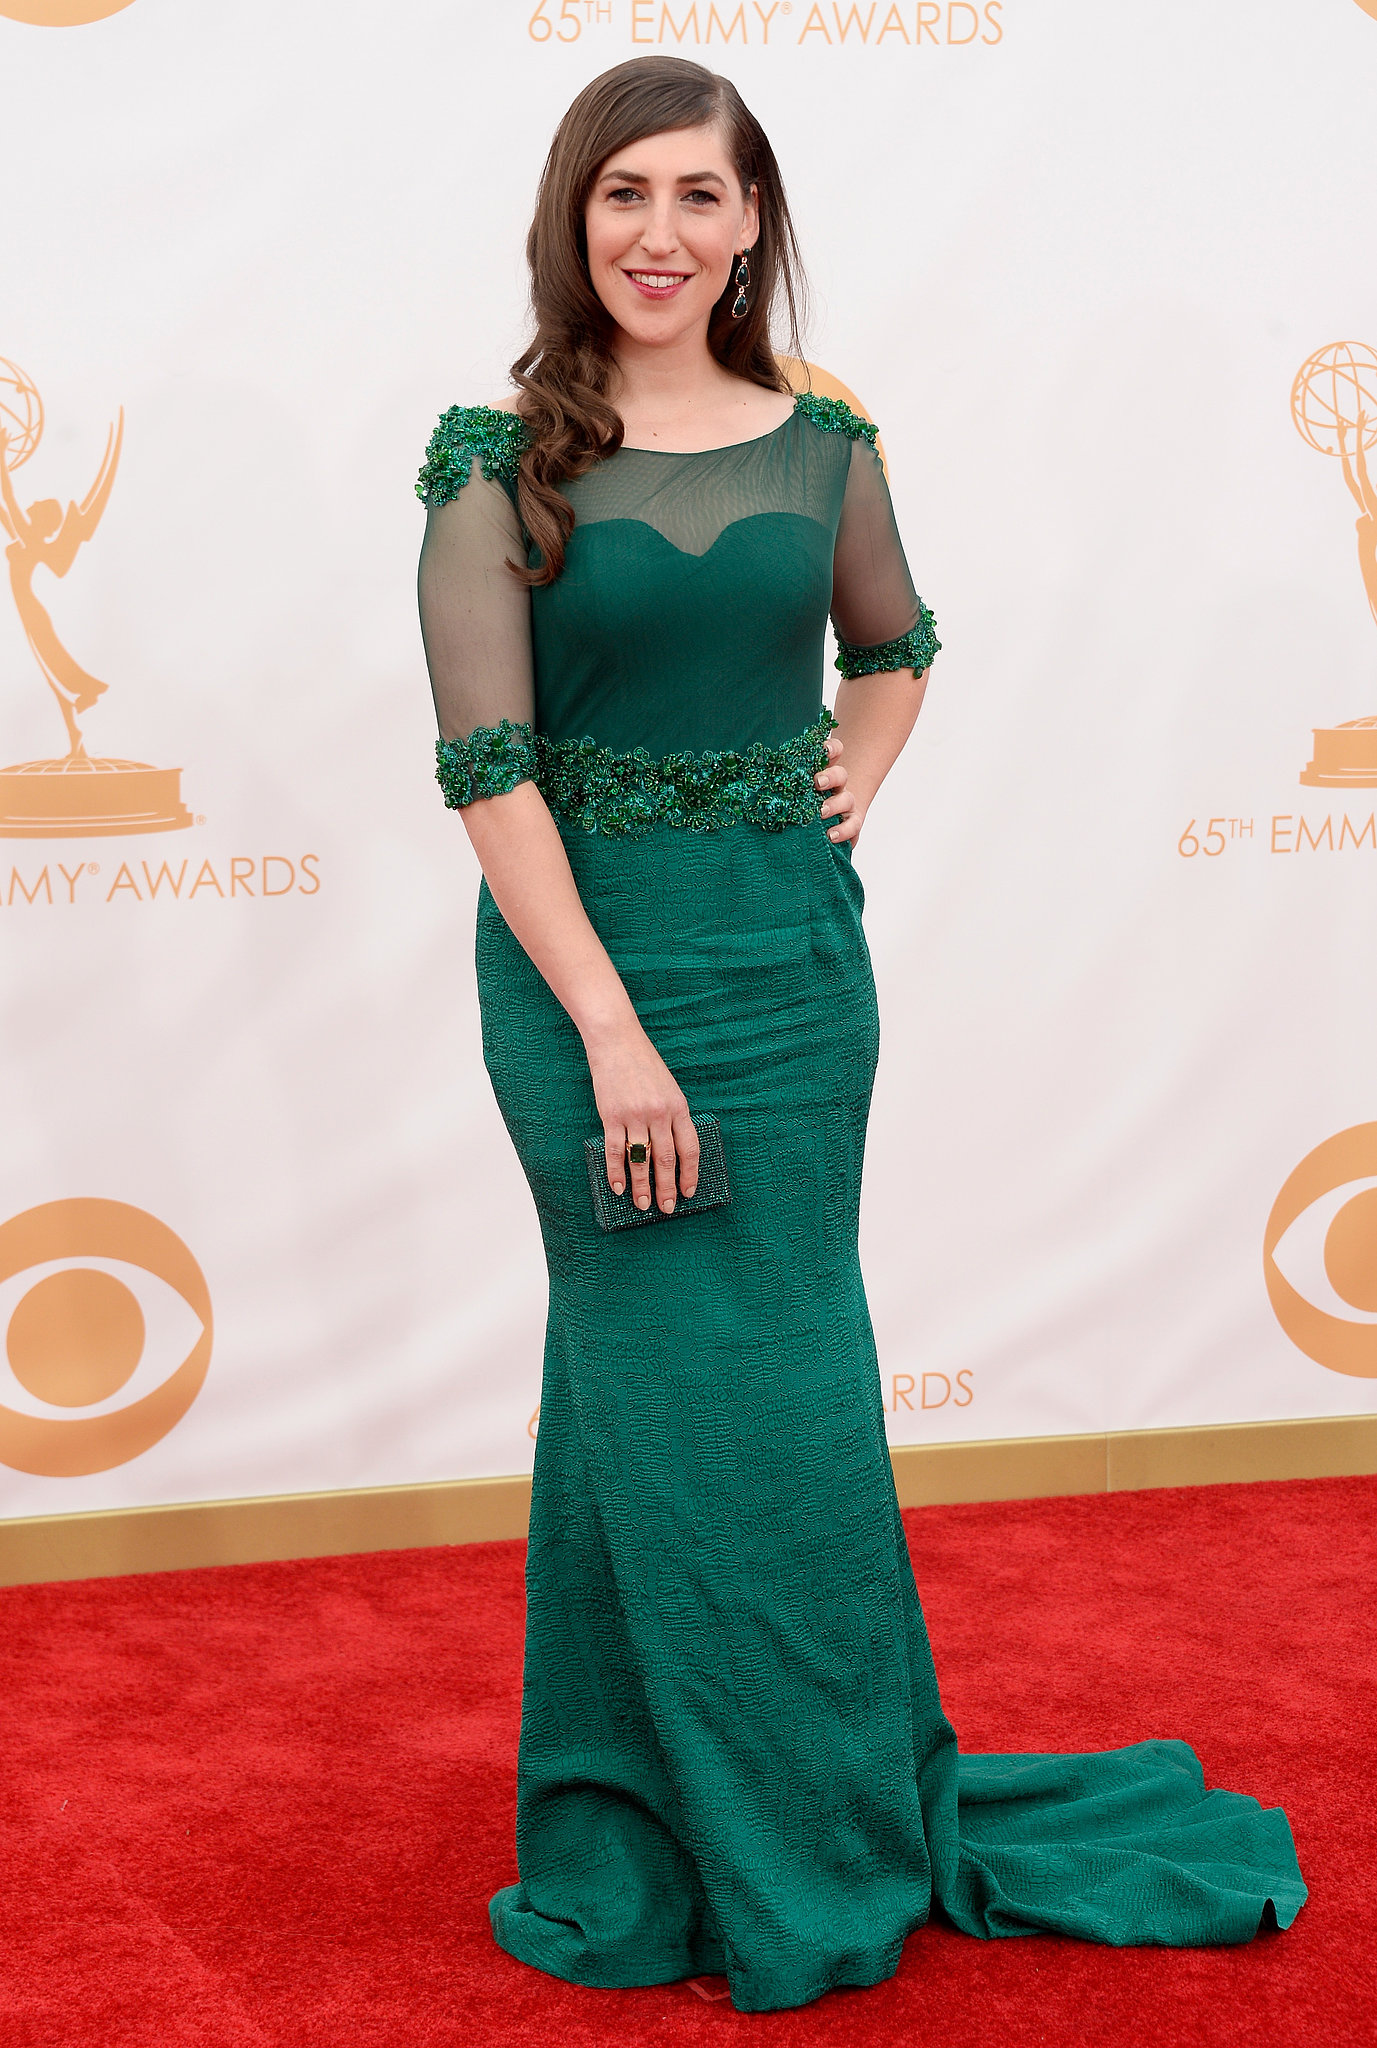 The Big Bang Theory's Mayim Bialik donned a green gown for the Emmys.